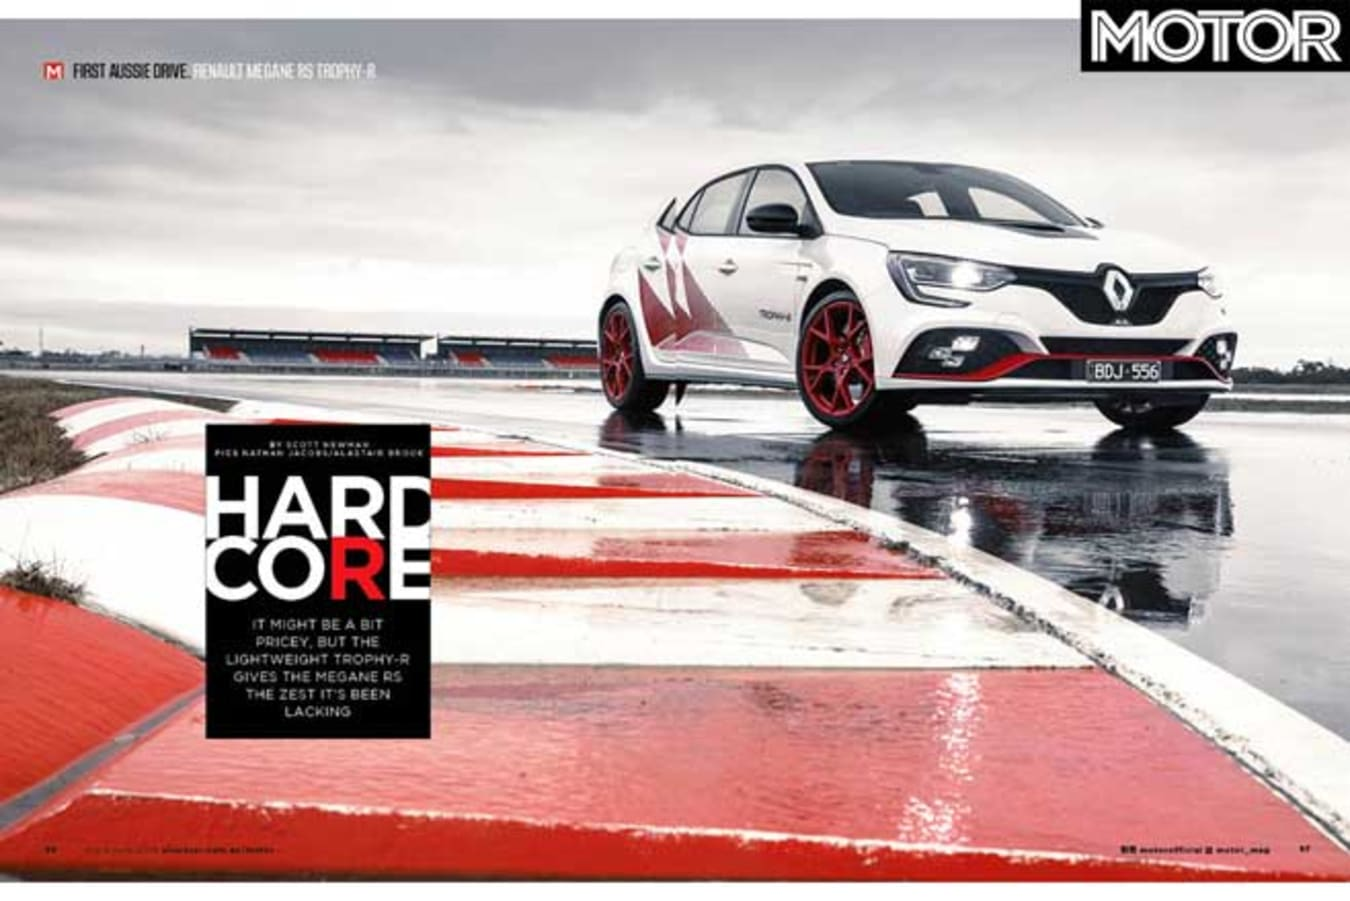 MOTOR Magazine Annual 2019 Issue Renault Megane RS Trophy R Review Jpg